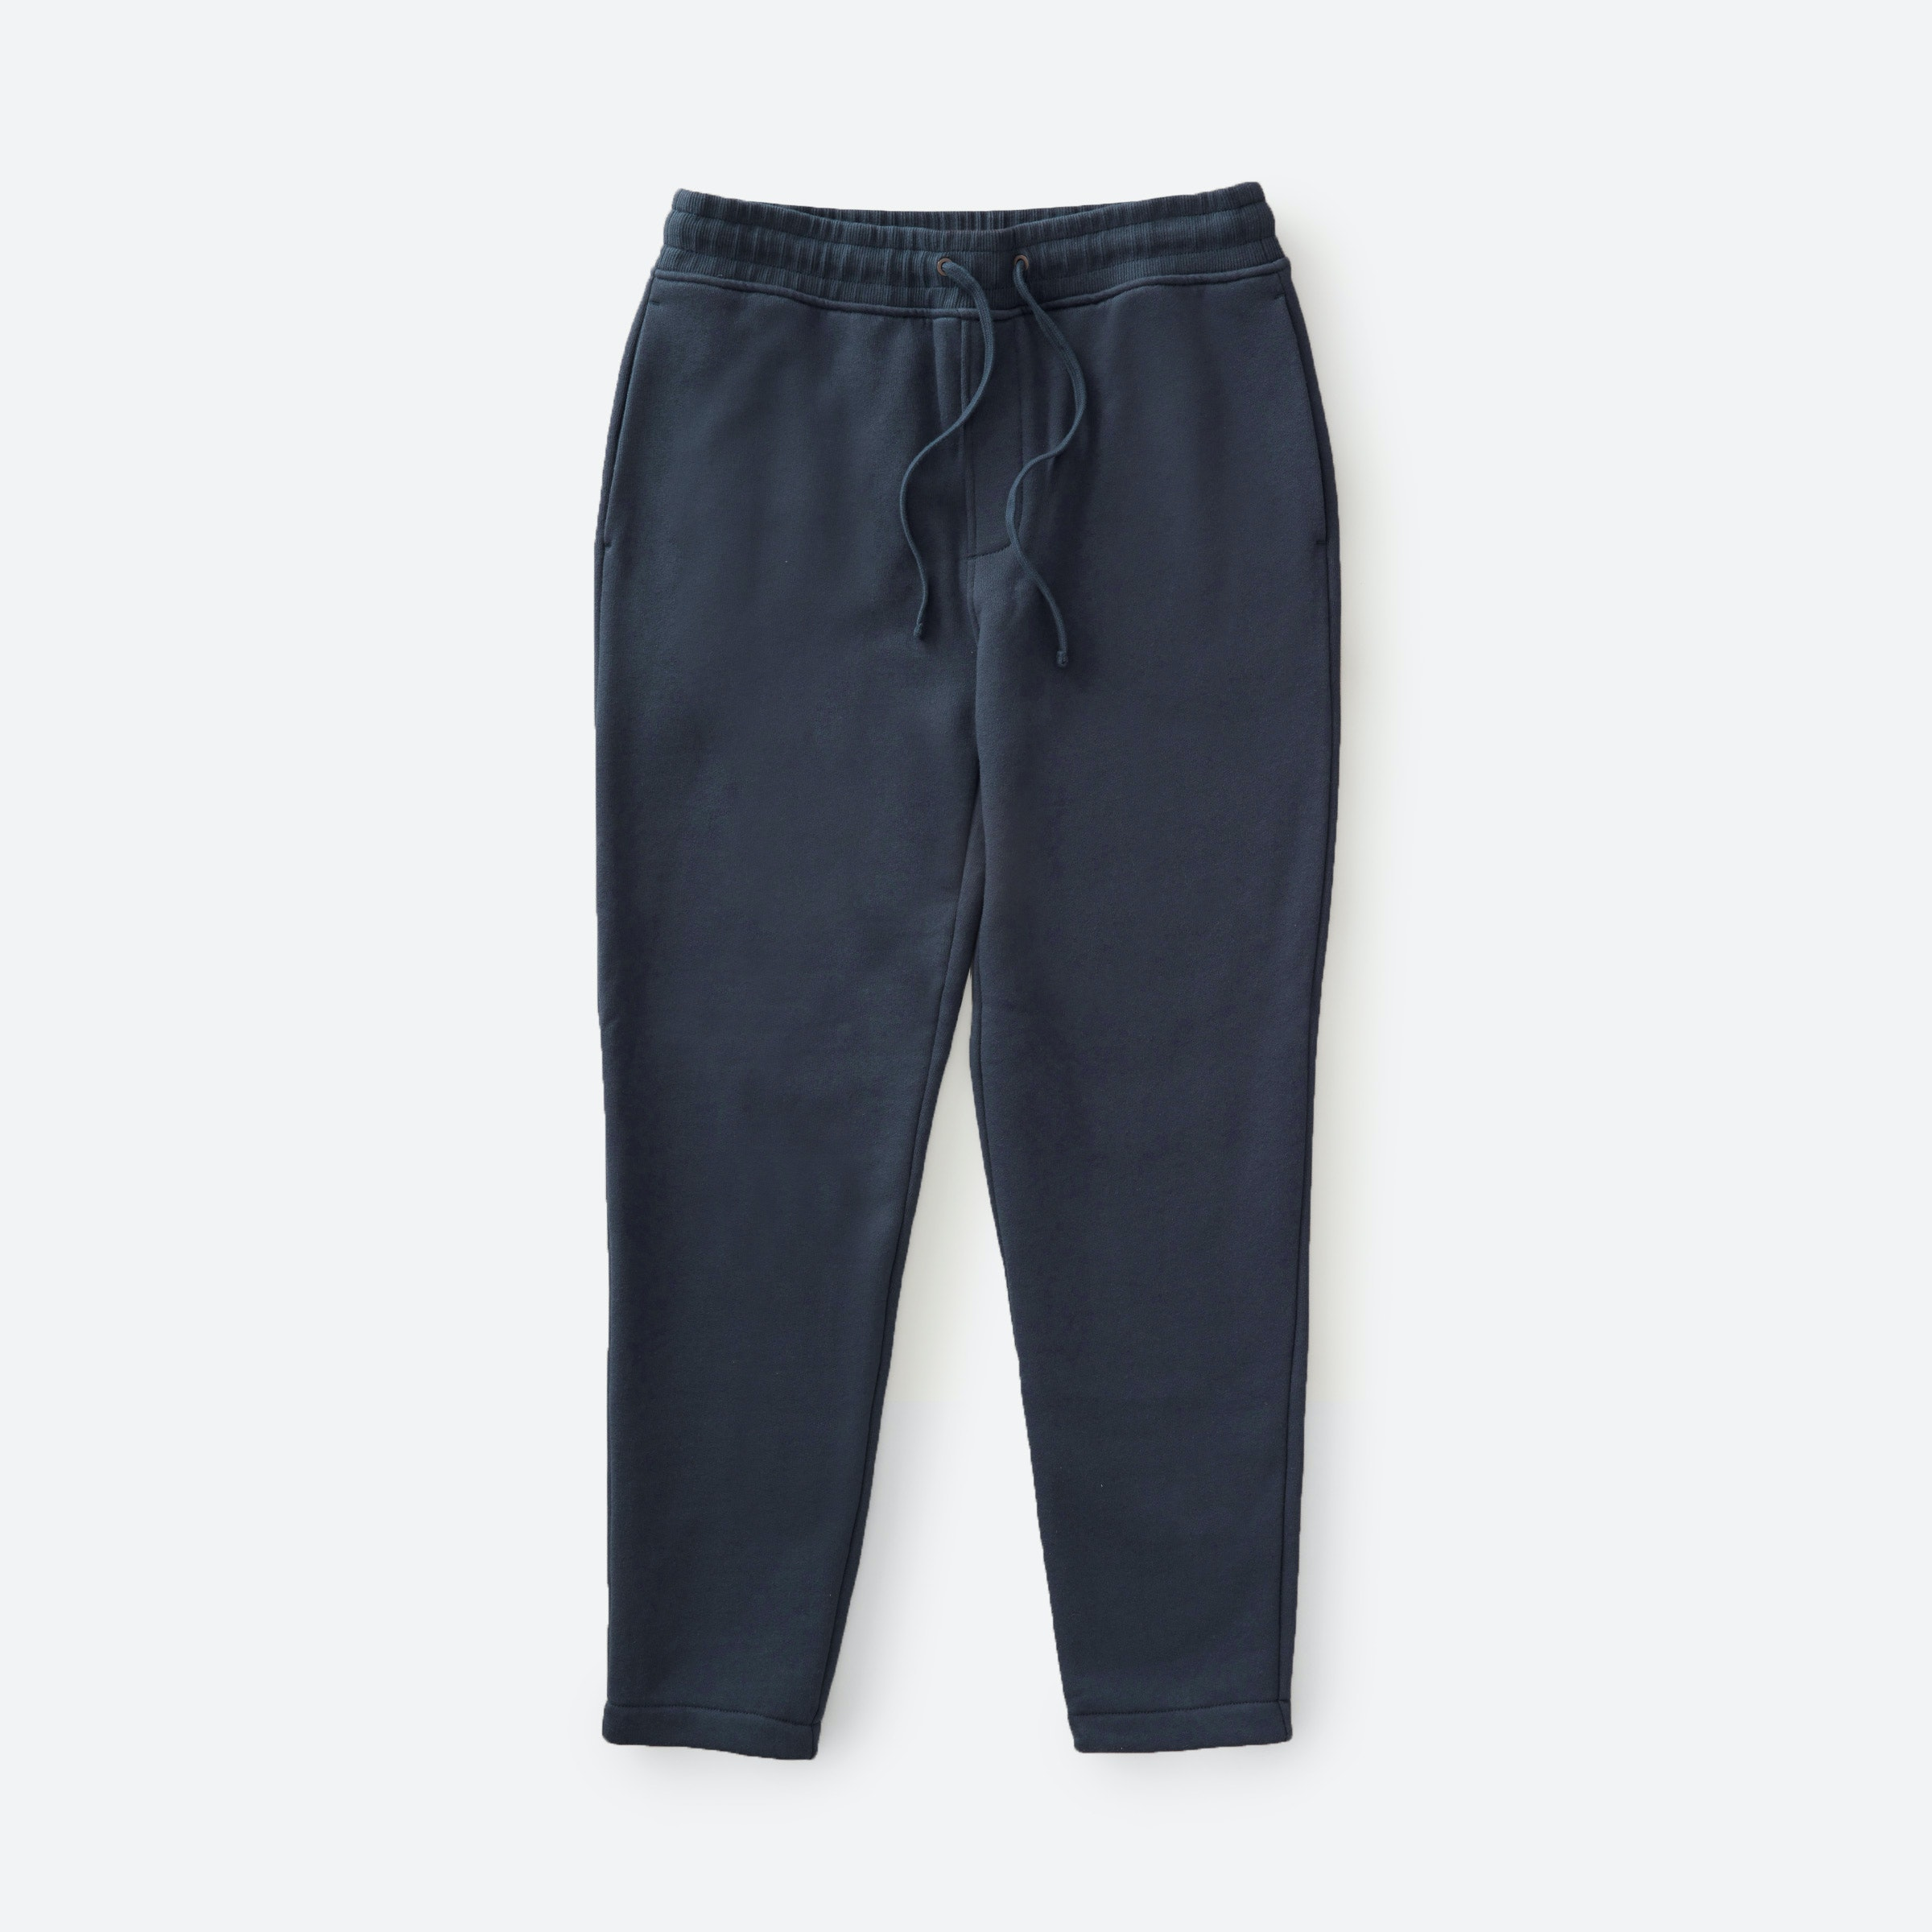 The 365 Fleece Sweatpant by Everlane